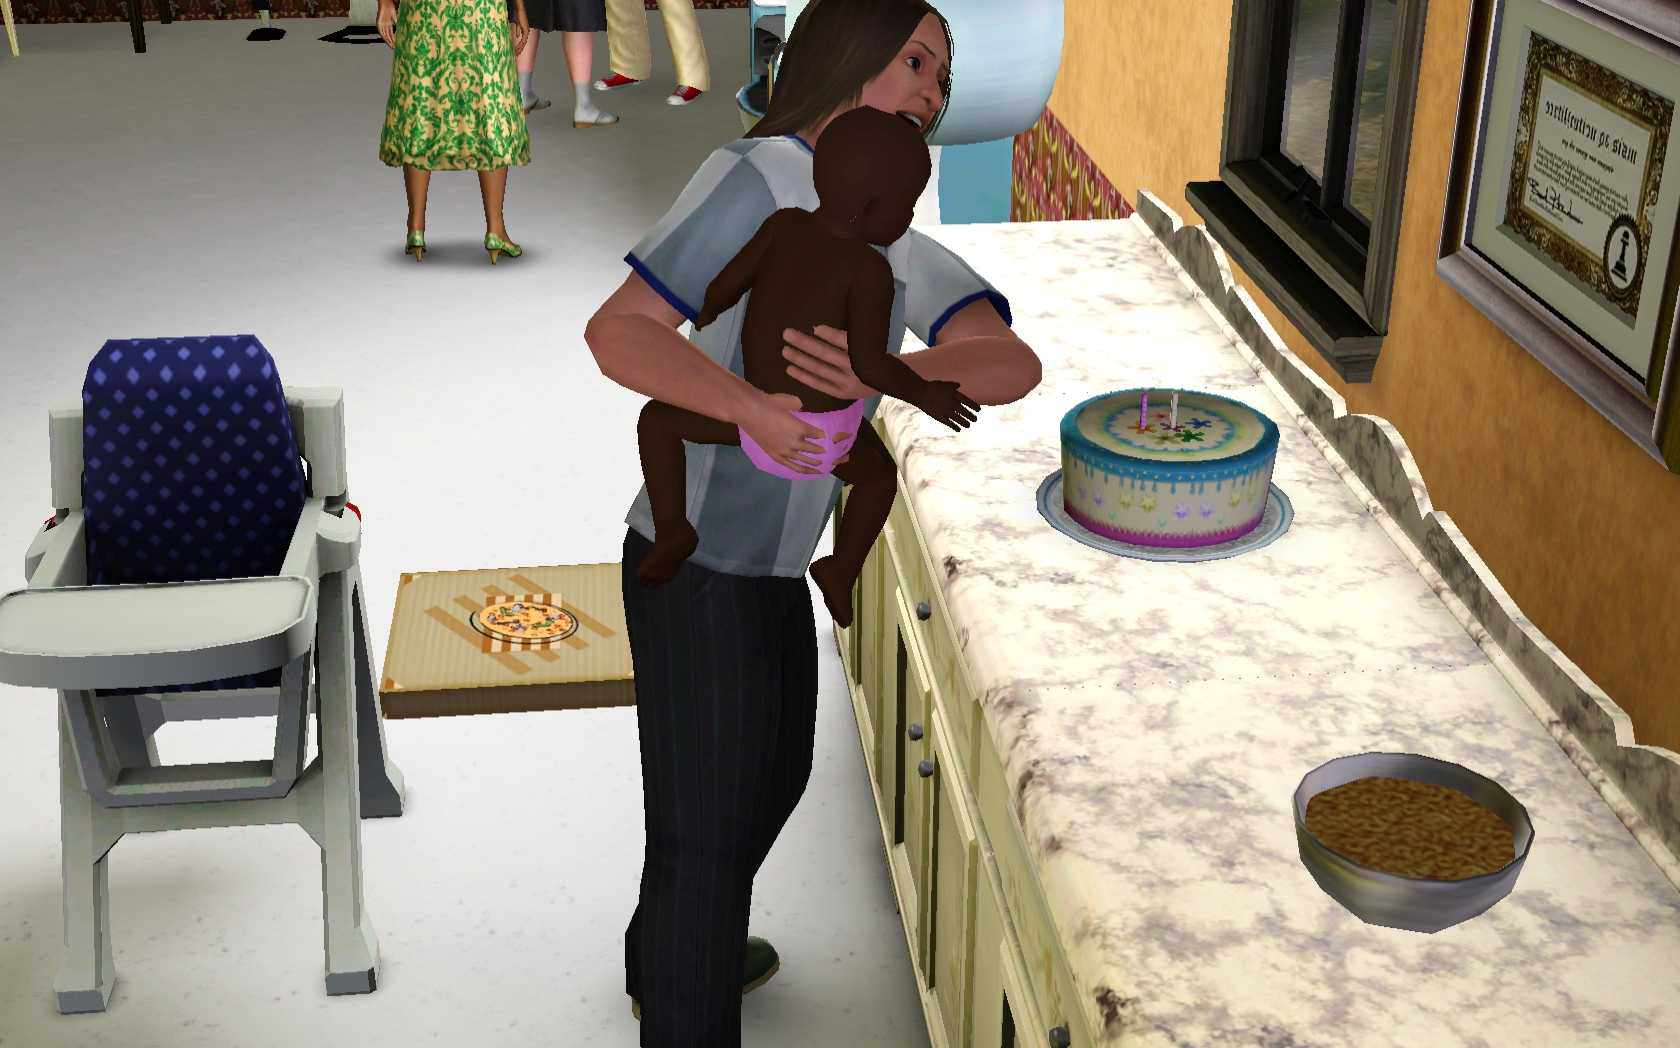 Sims 3 Parenting: Baby's First Birthday Party